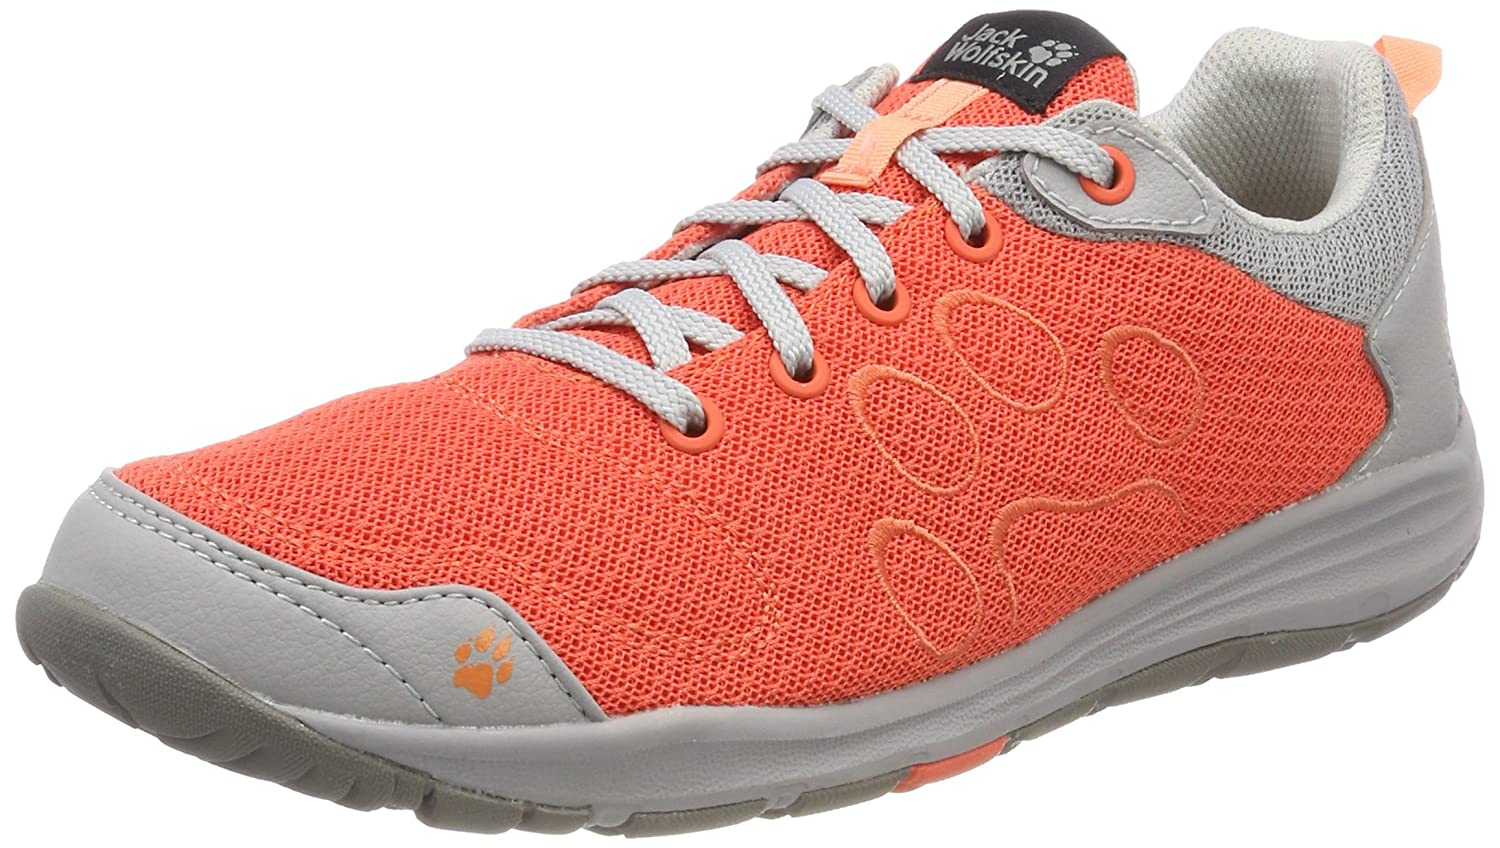 Jack Wolfskin Monterey Air Low W, Zapatillas de Cross para Mujer, Naranja (Hot Coral), 35.5 EU